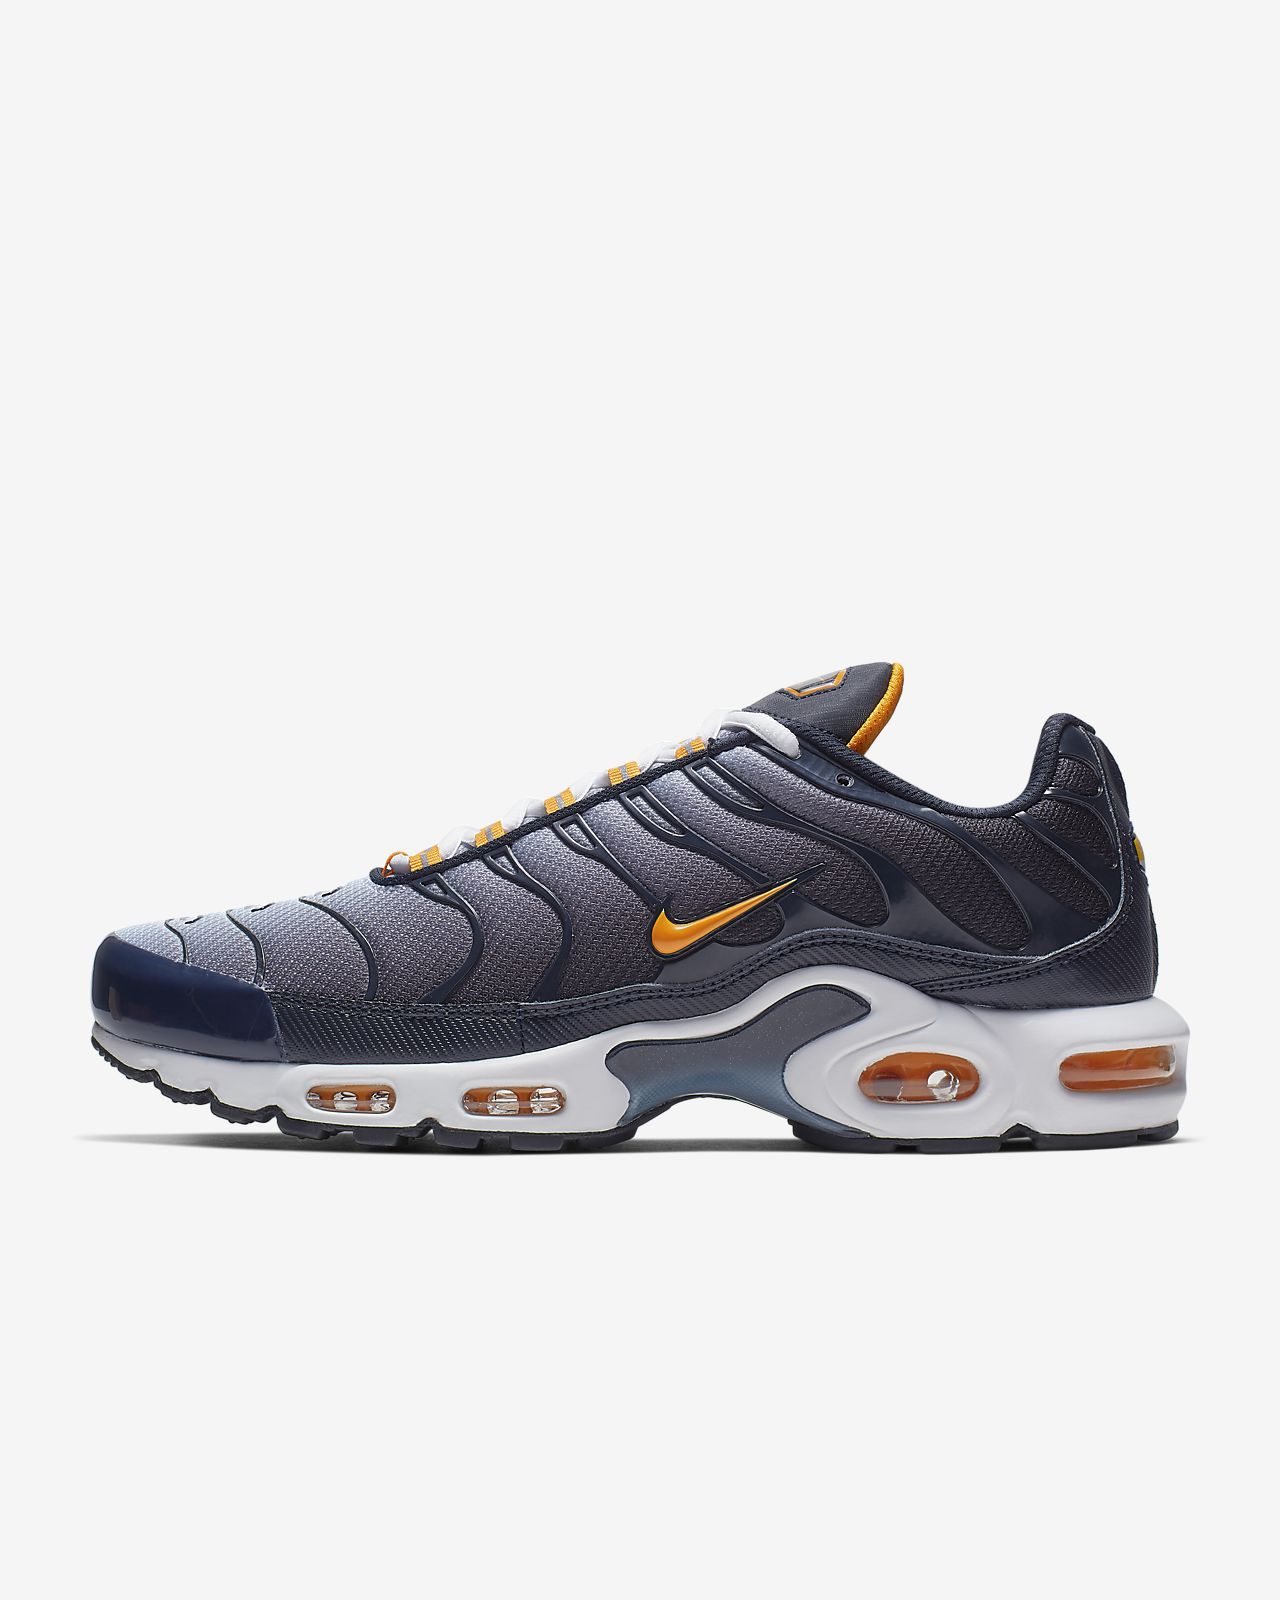 premium selection 911d4 0eadc ... Sko Nike Air Max Plus för män